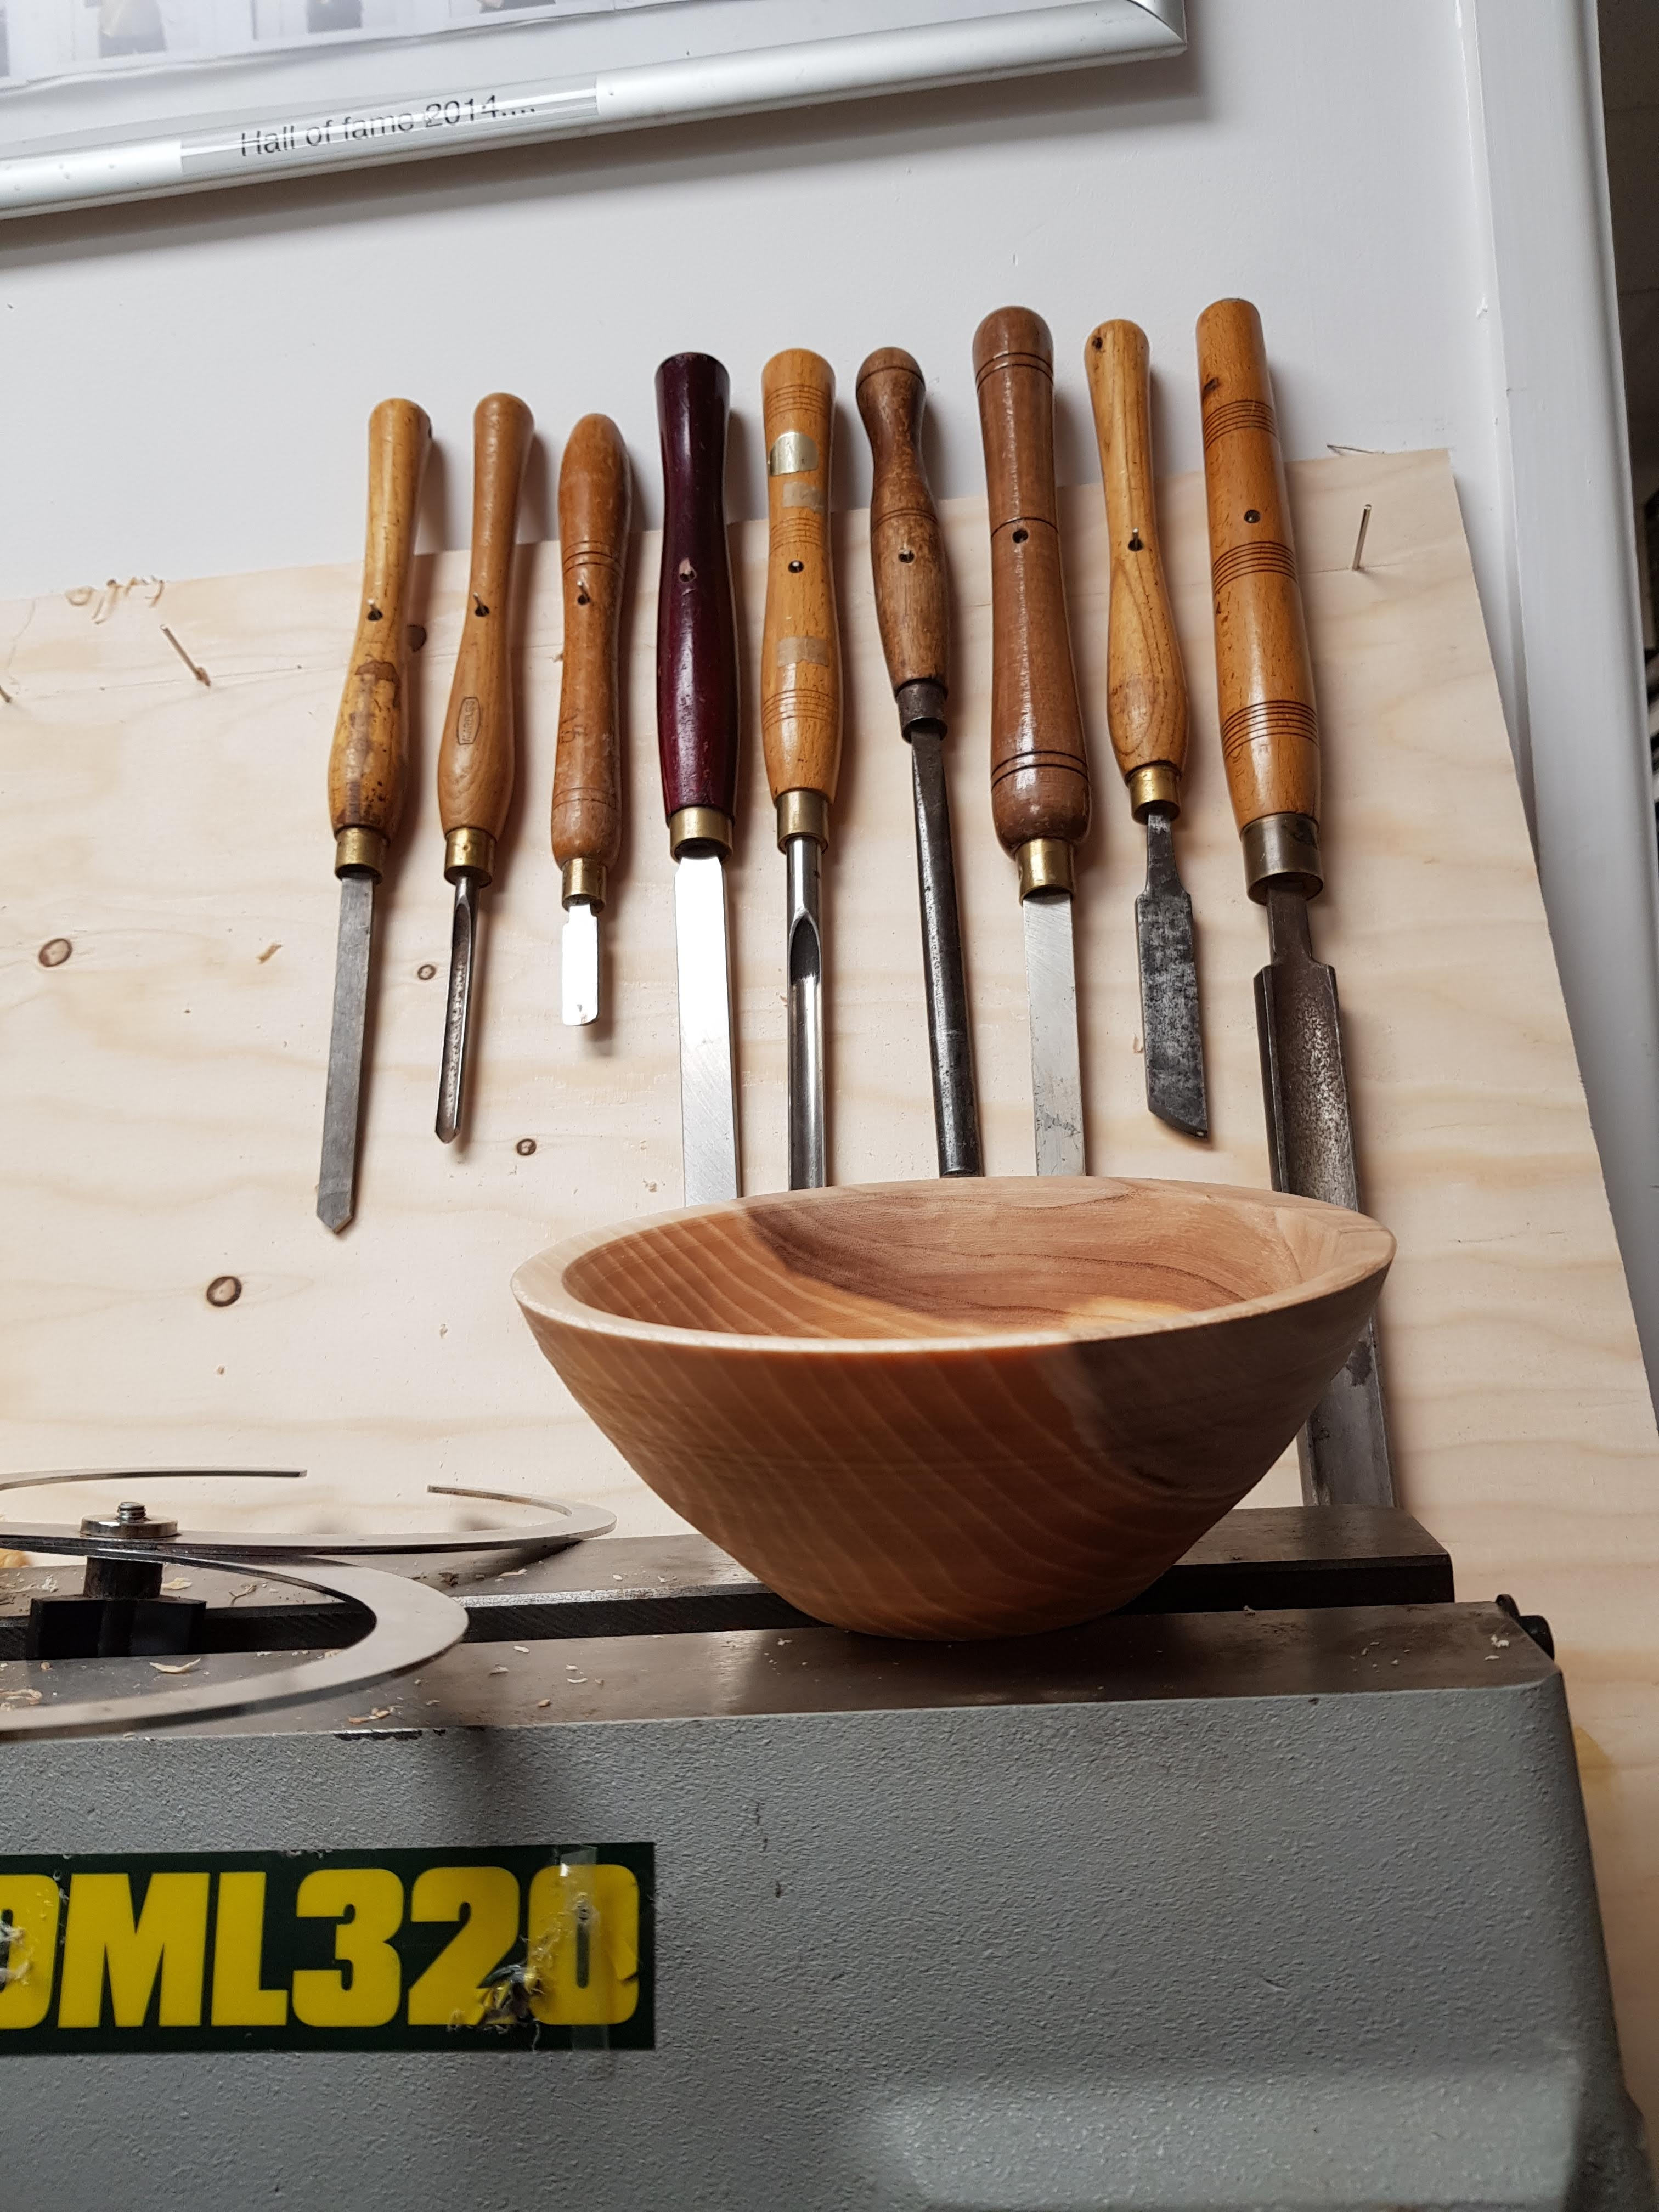 Bowl with chisels at Cambridge Art Makers